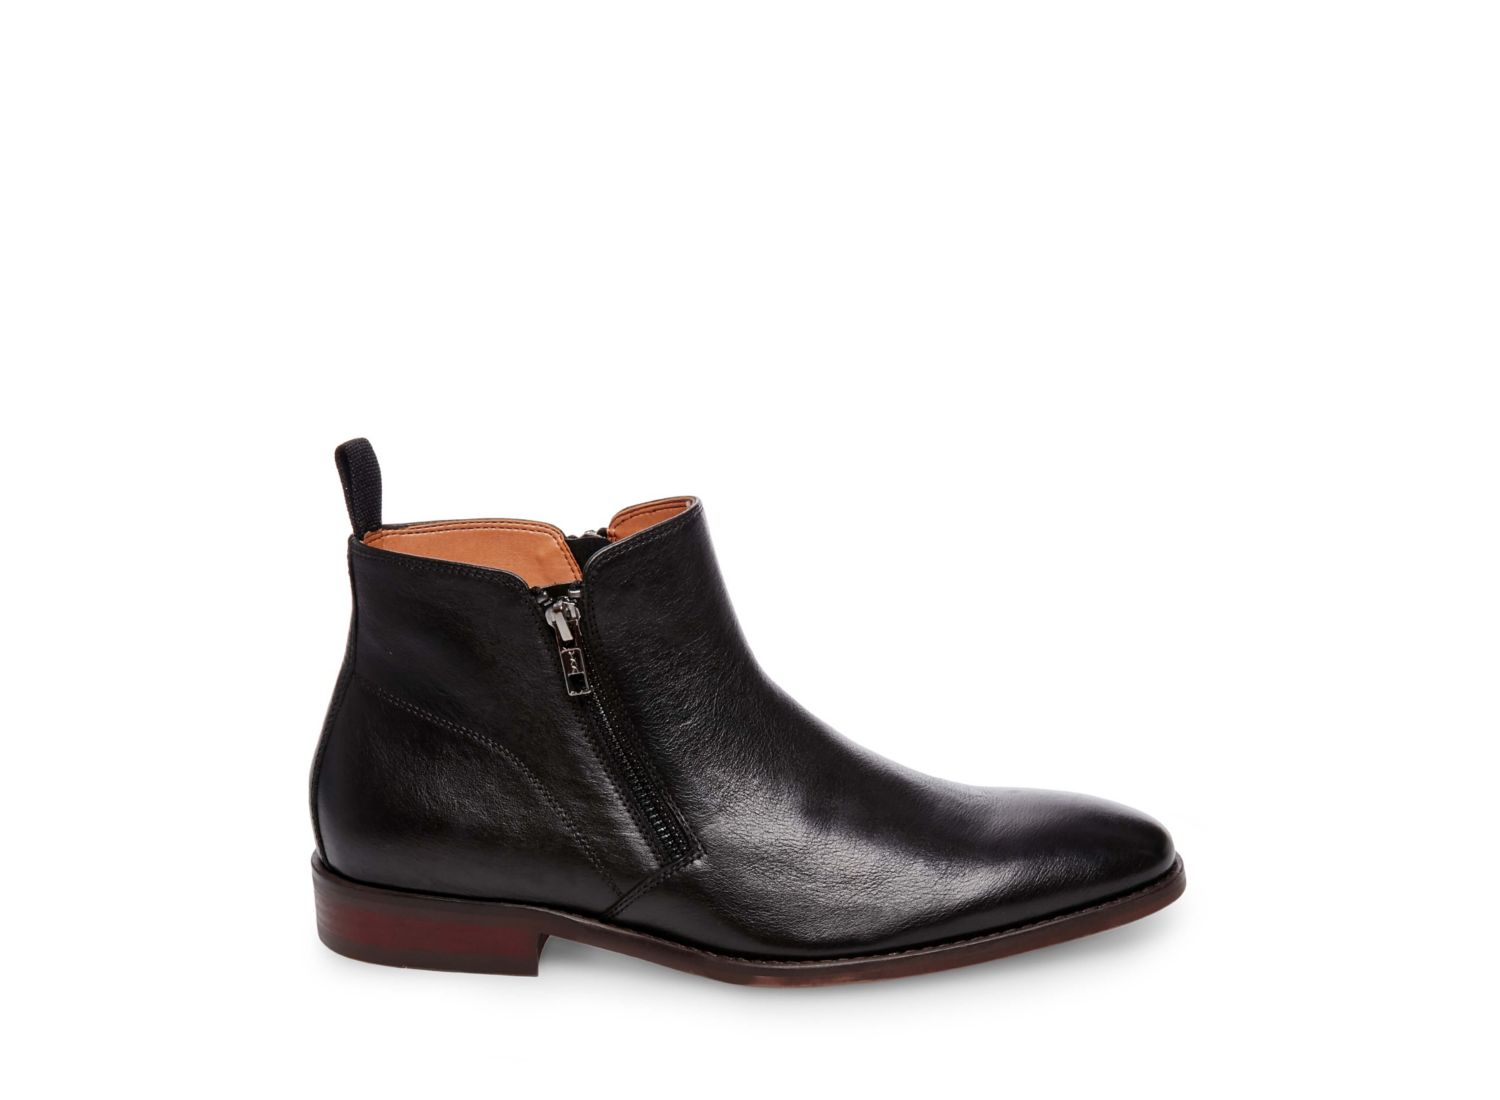 ALONZO BLACK LEATHER - Steve Madden